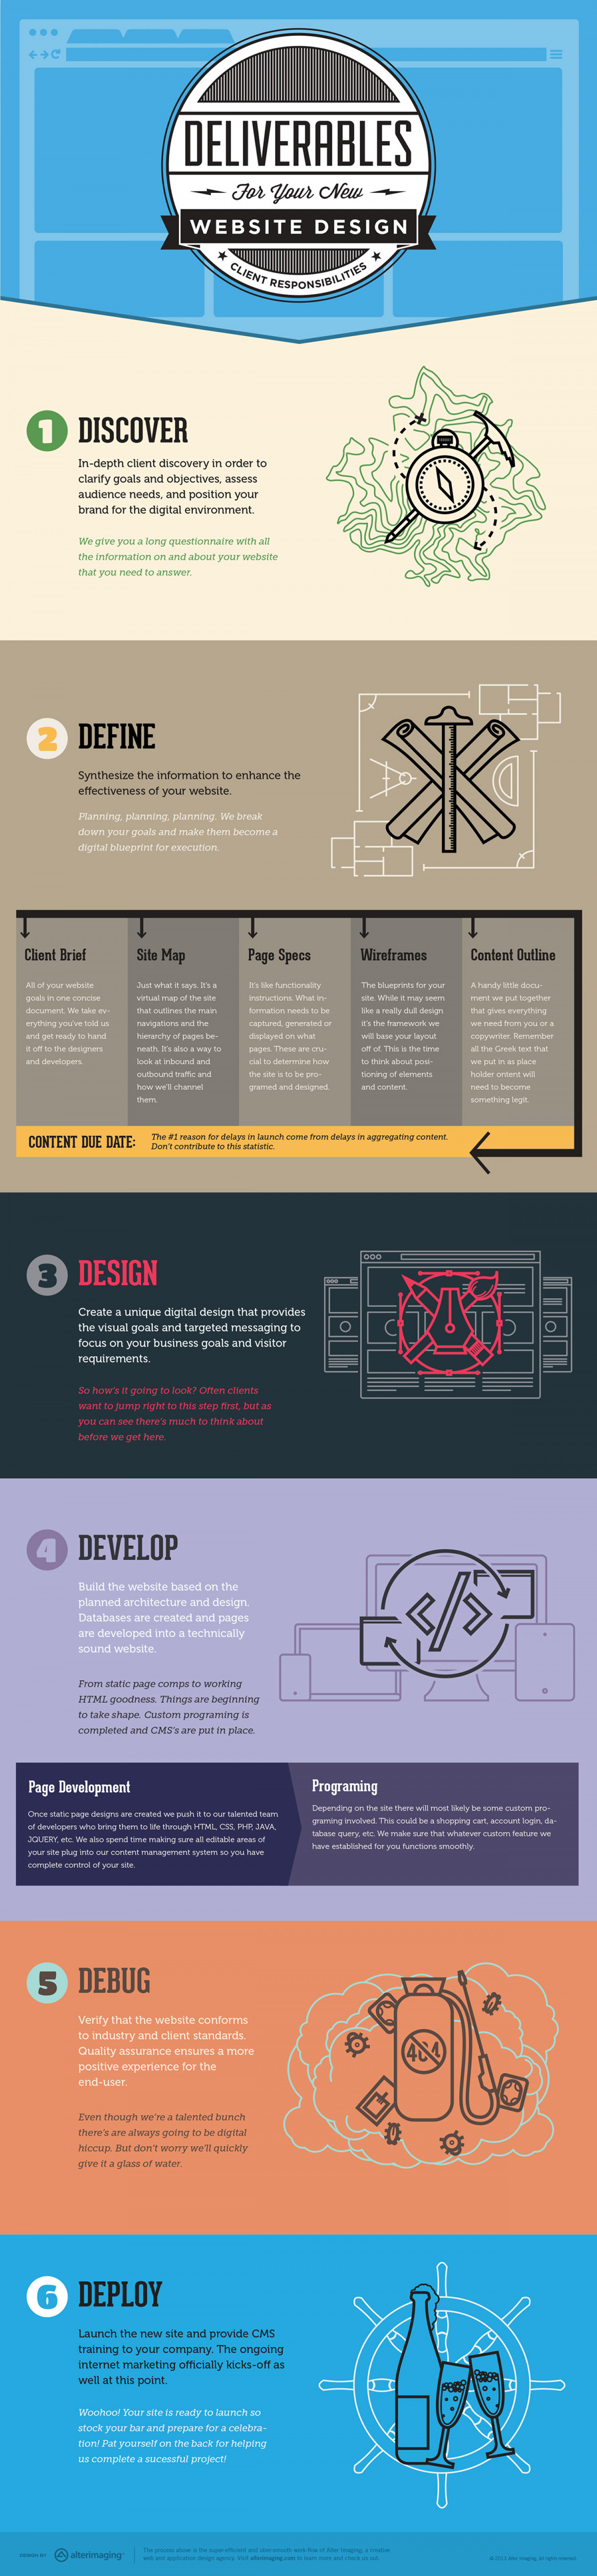 6 Steps to a Successful Web Design Infographic